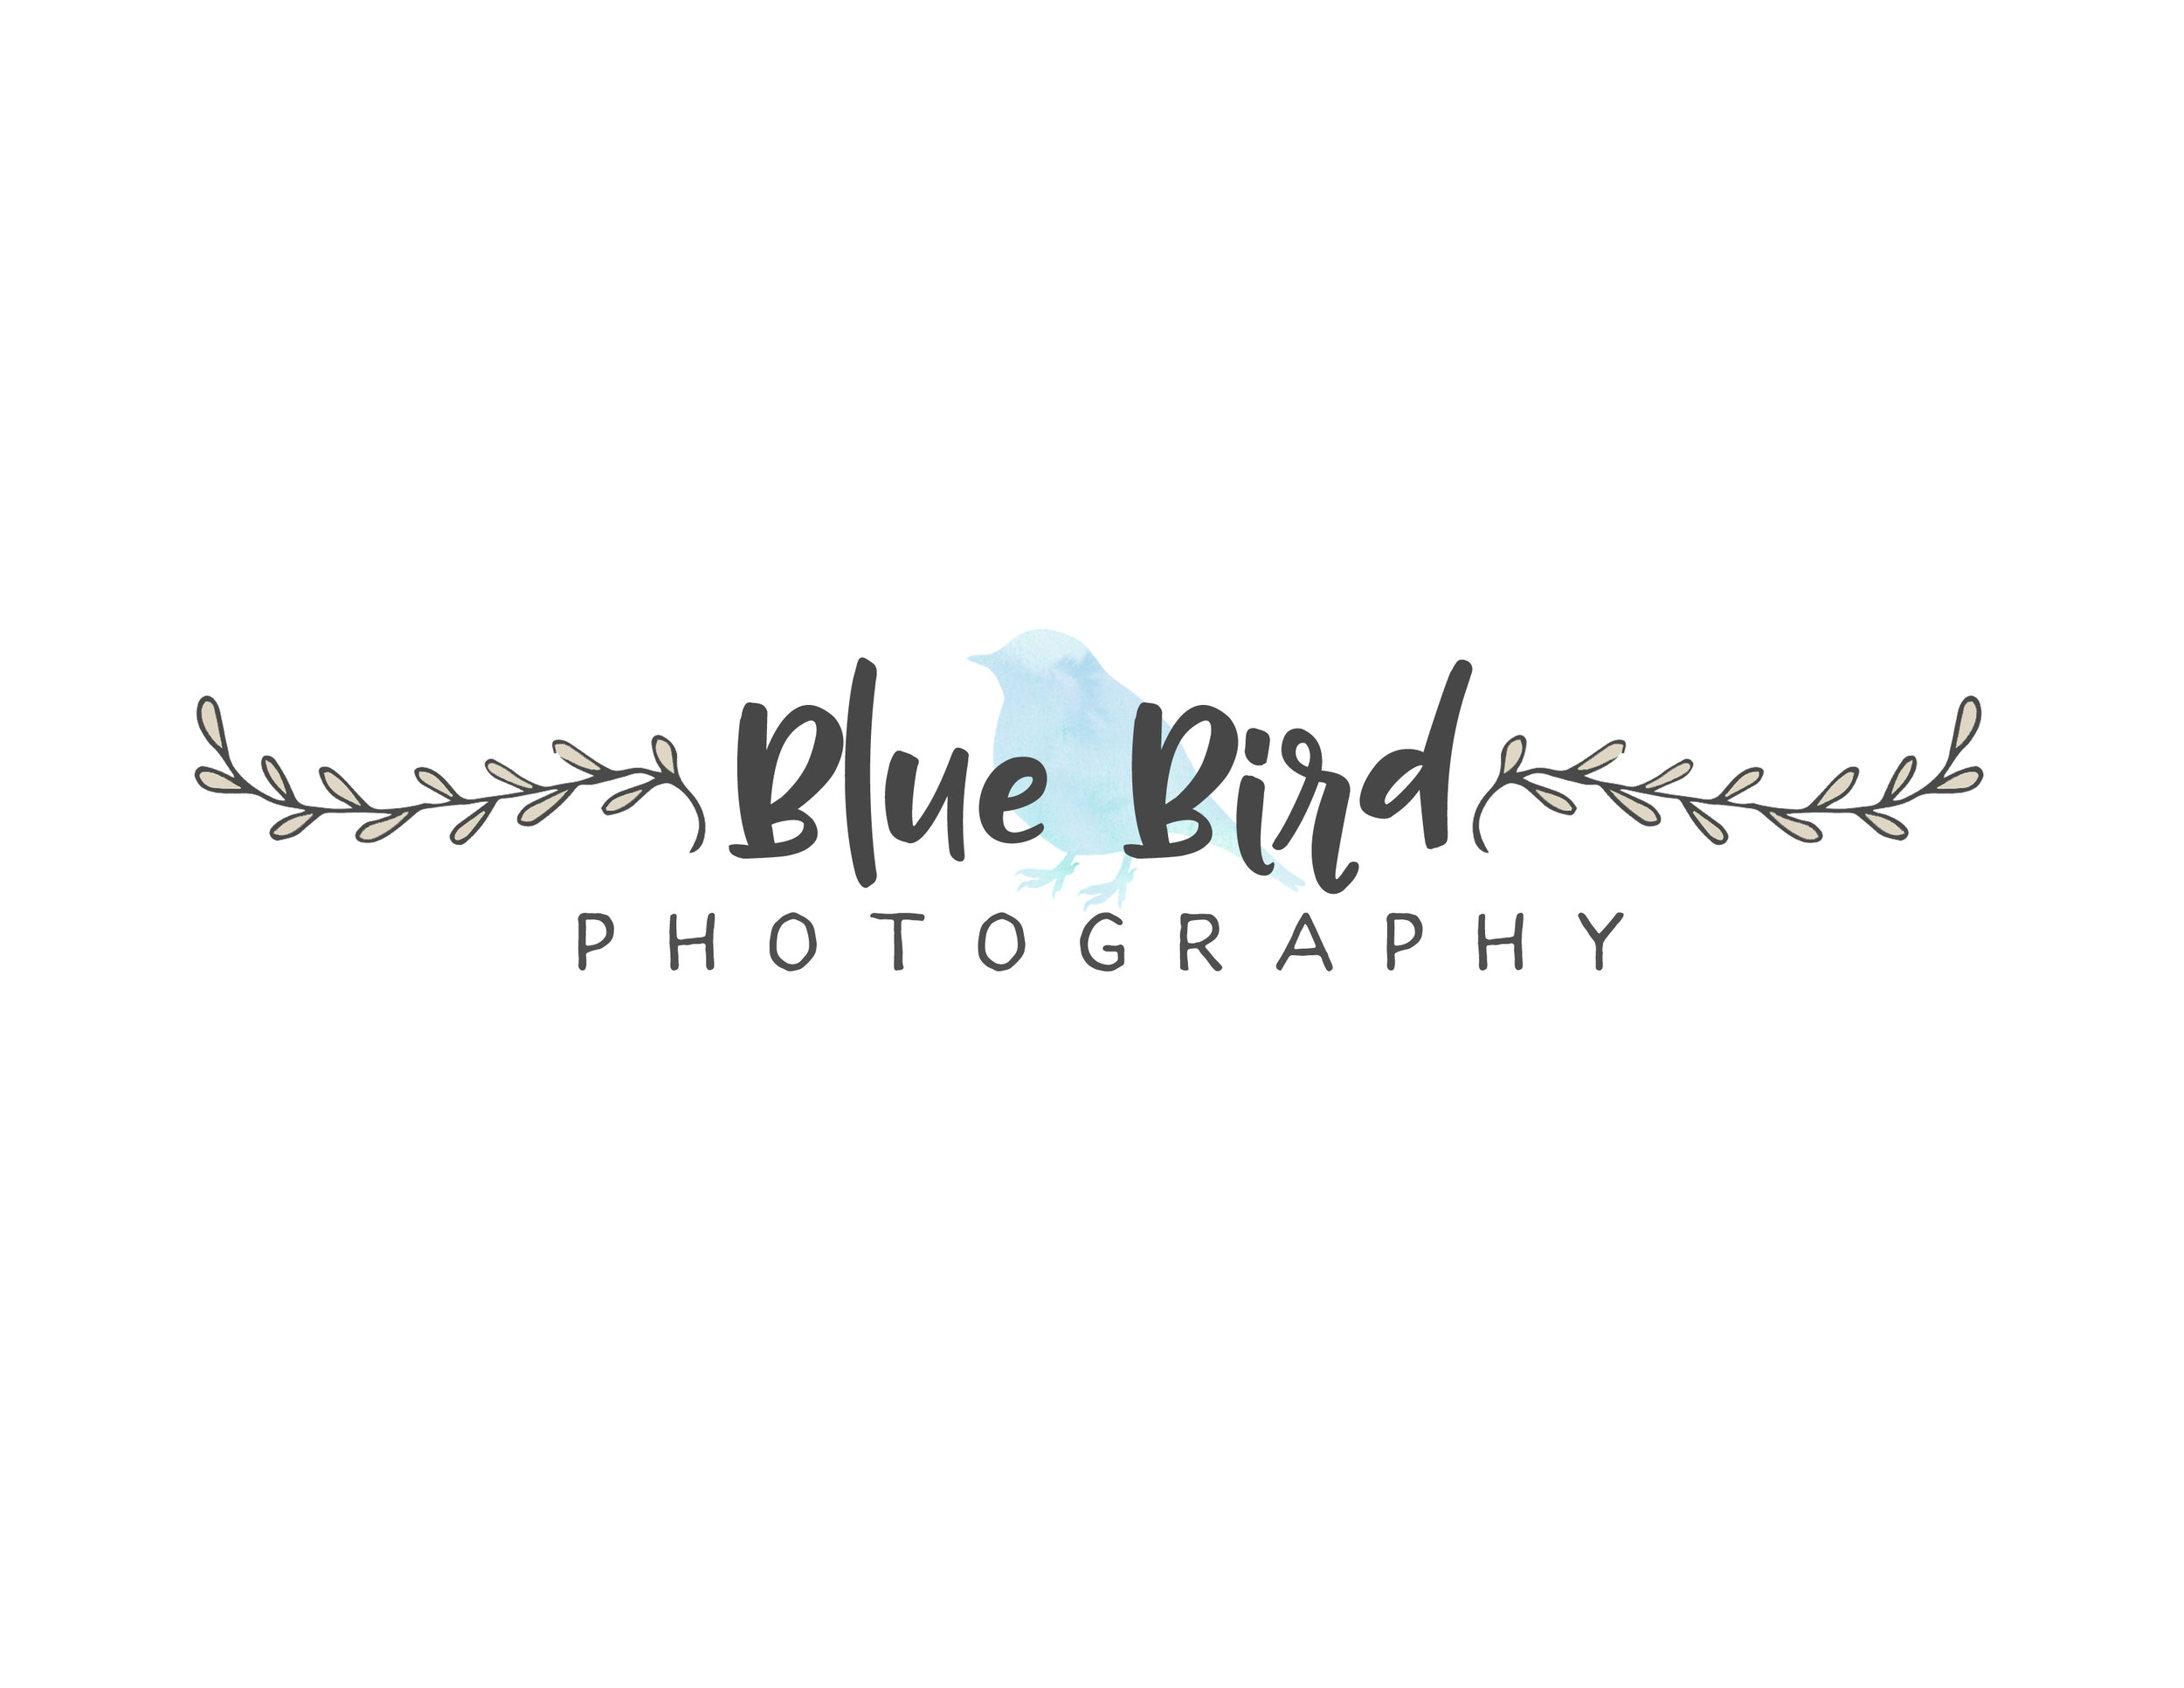 blue bird logo 1.jpg